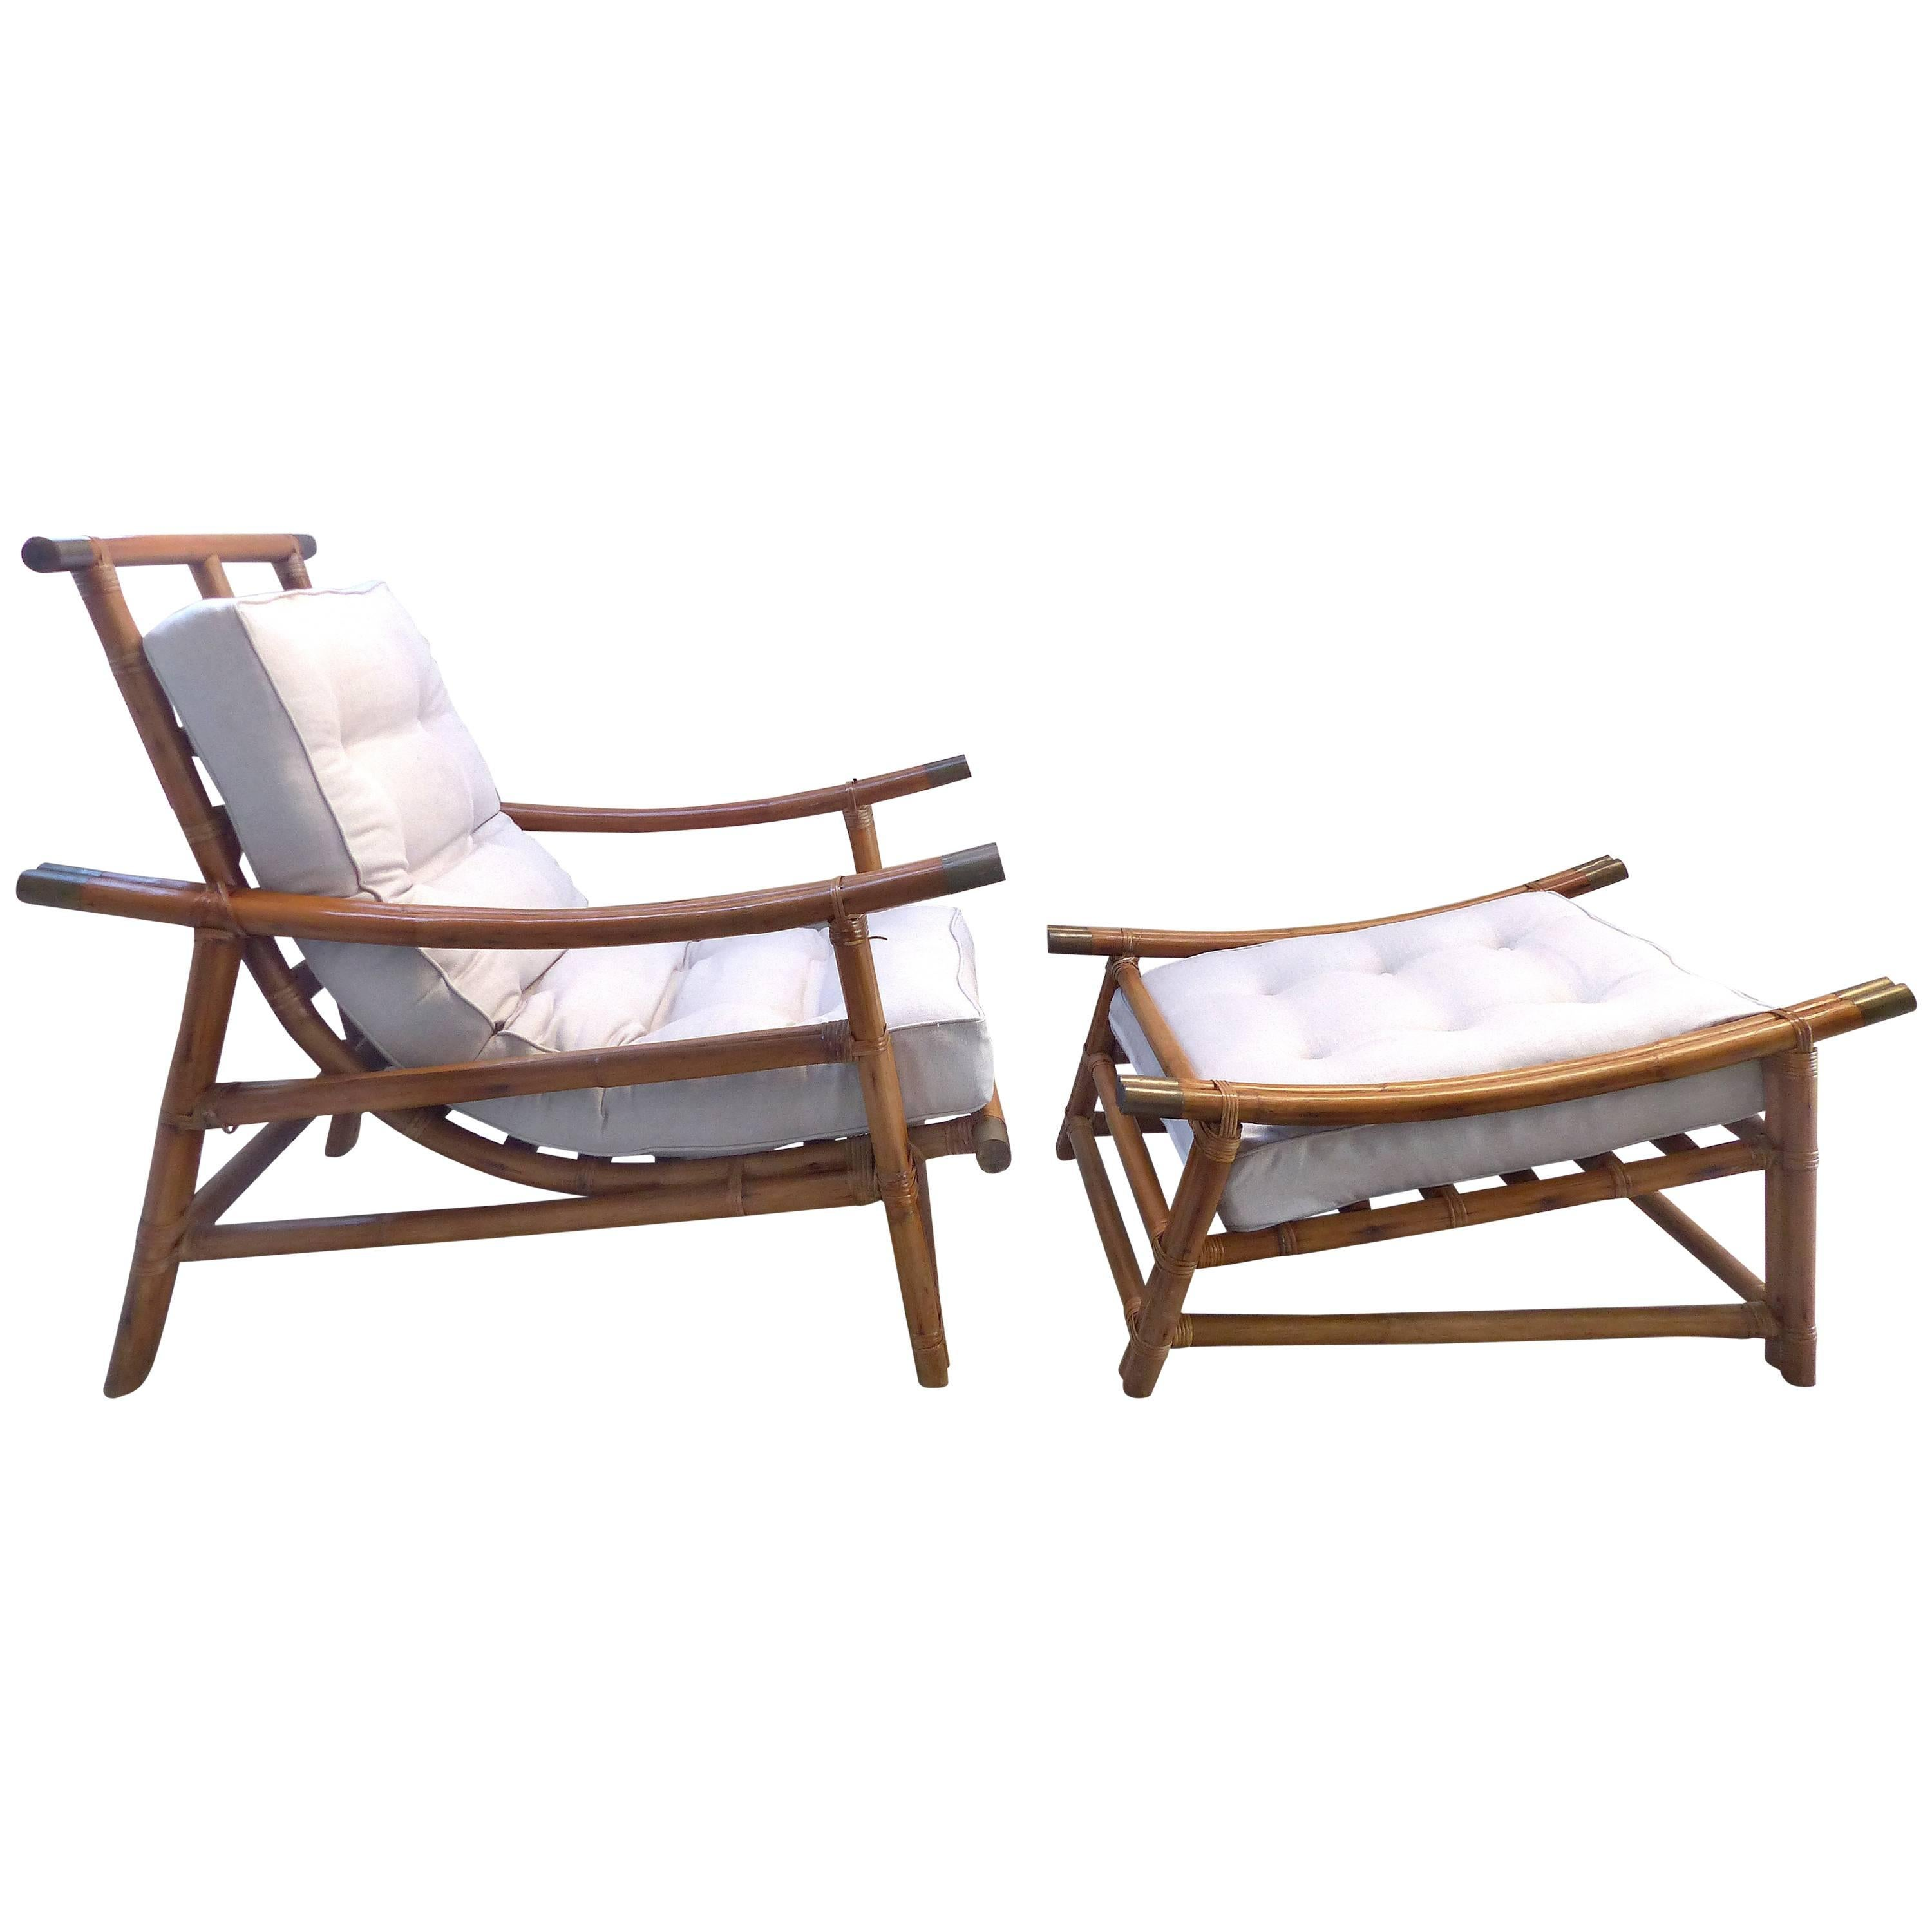 Gallery Of Affordable Midcentury Modern Rattan Lounge Chair And Ottoman By  Vogue Rattan For Sale With Rattan Lounge With Polyrattan Lounge Sale